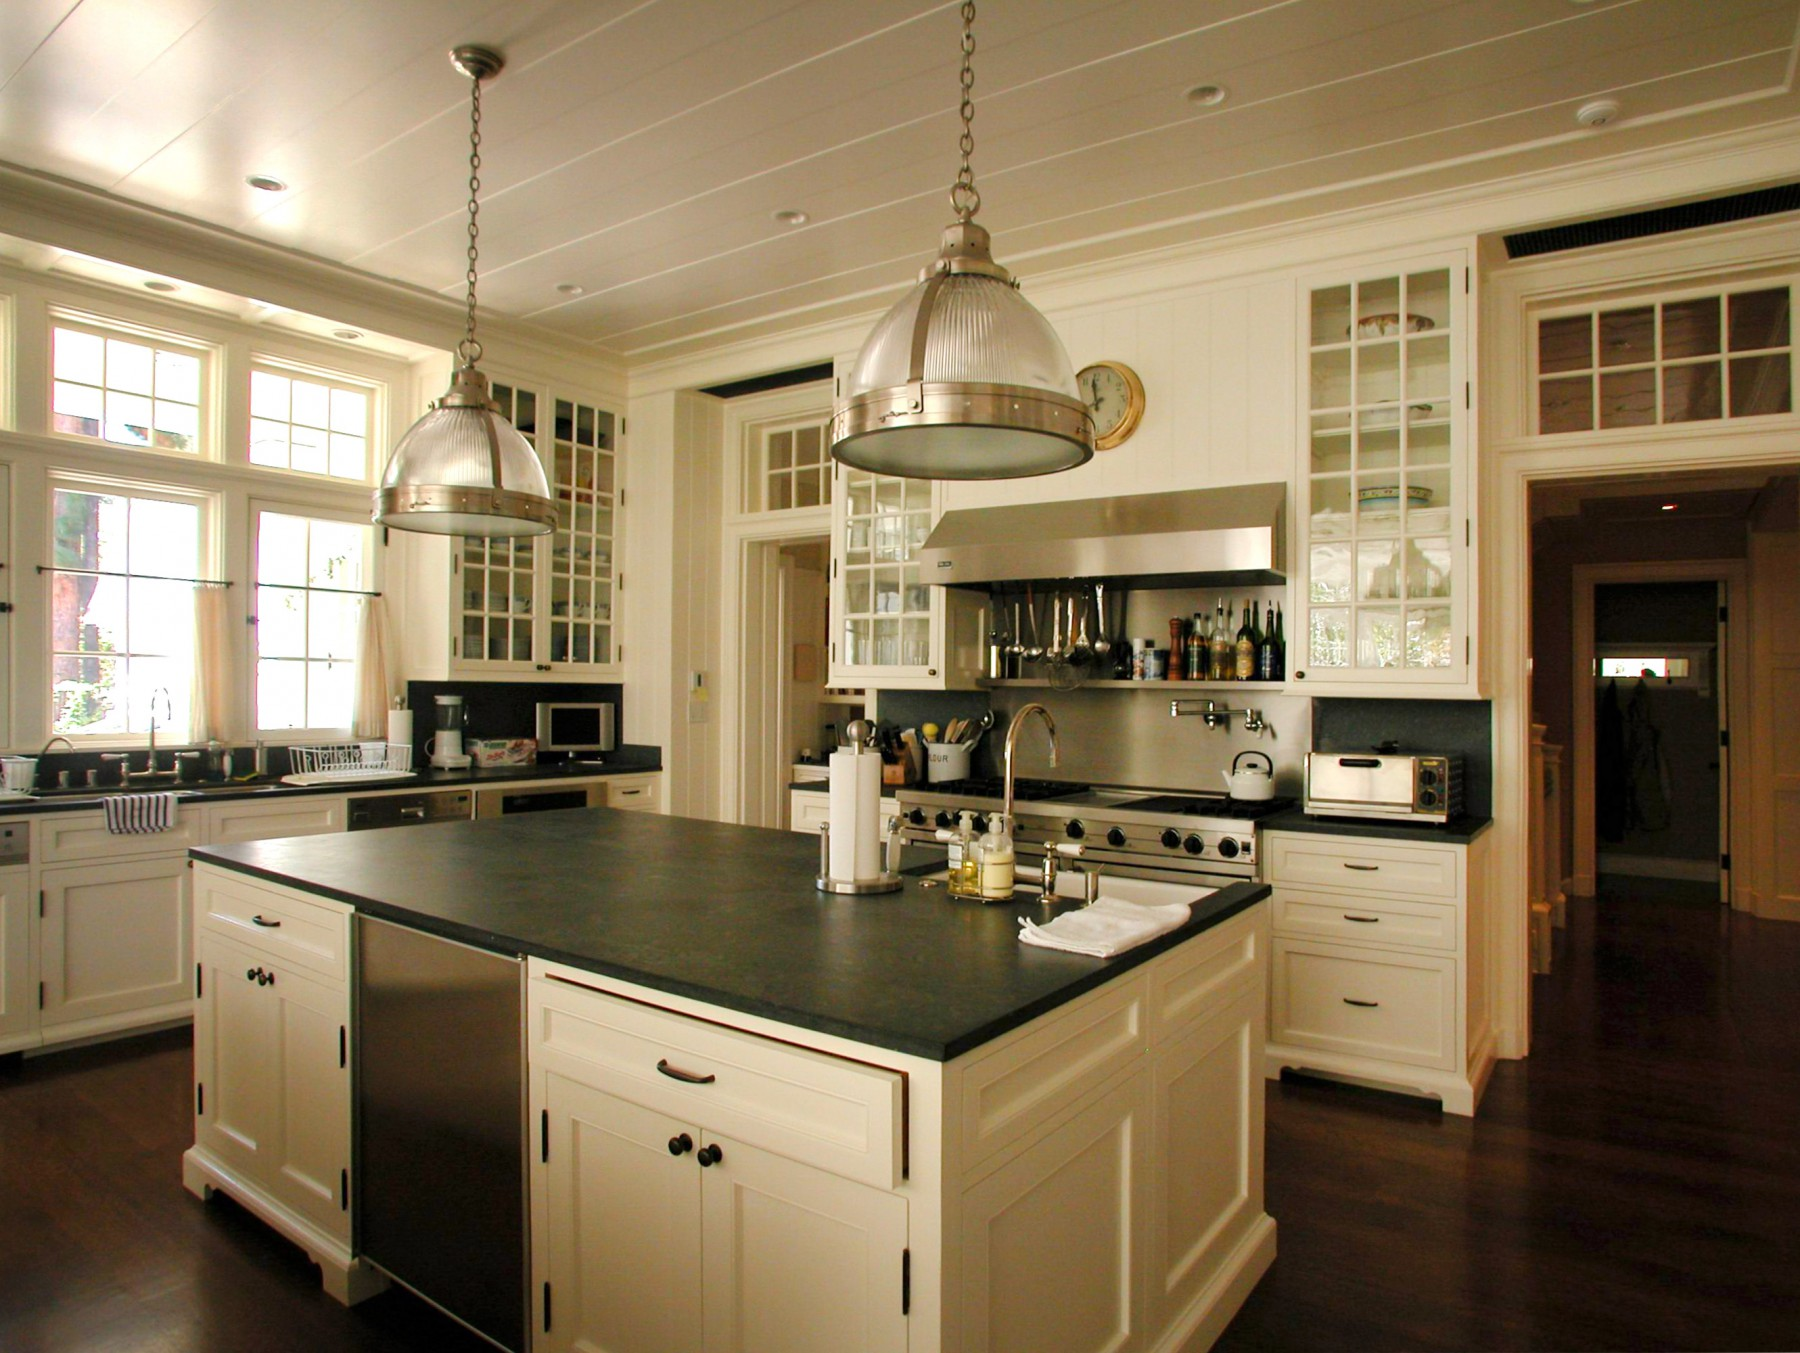 family kitchen designed for entertaining